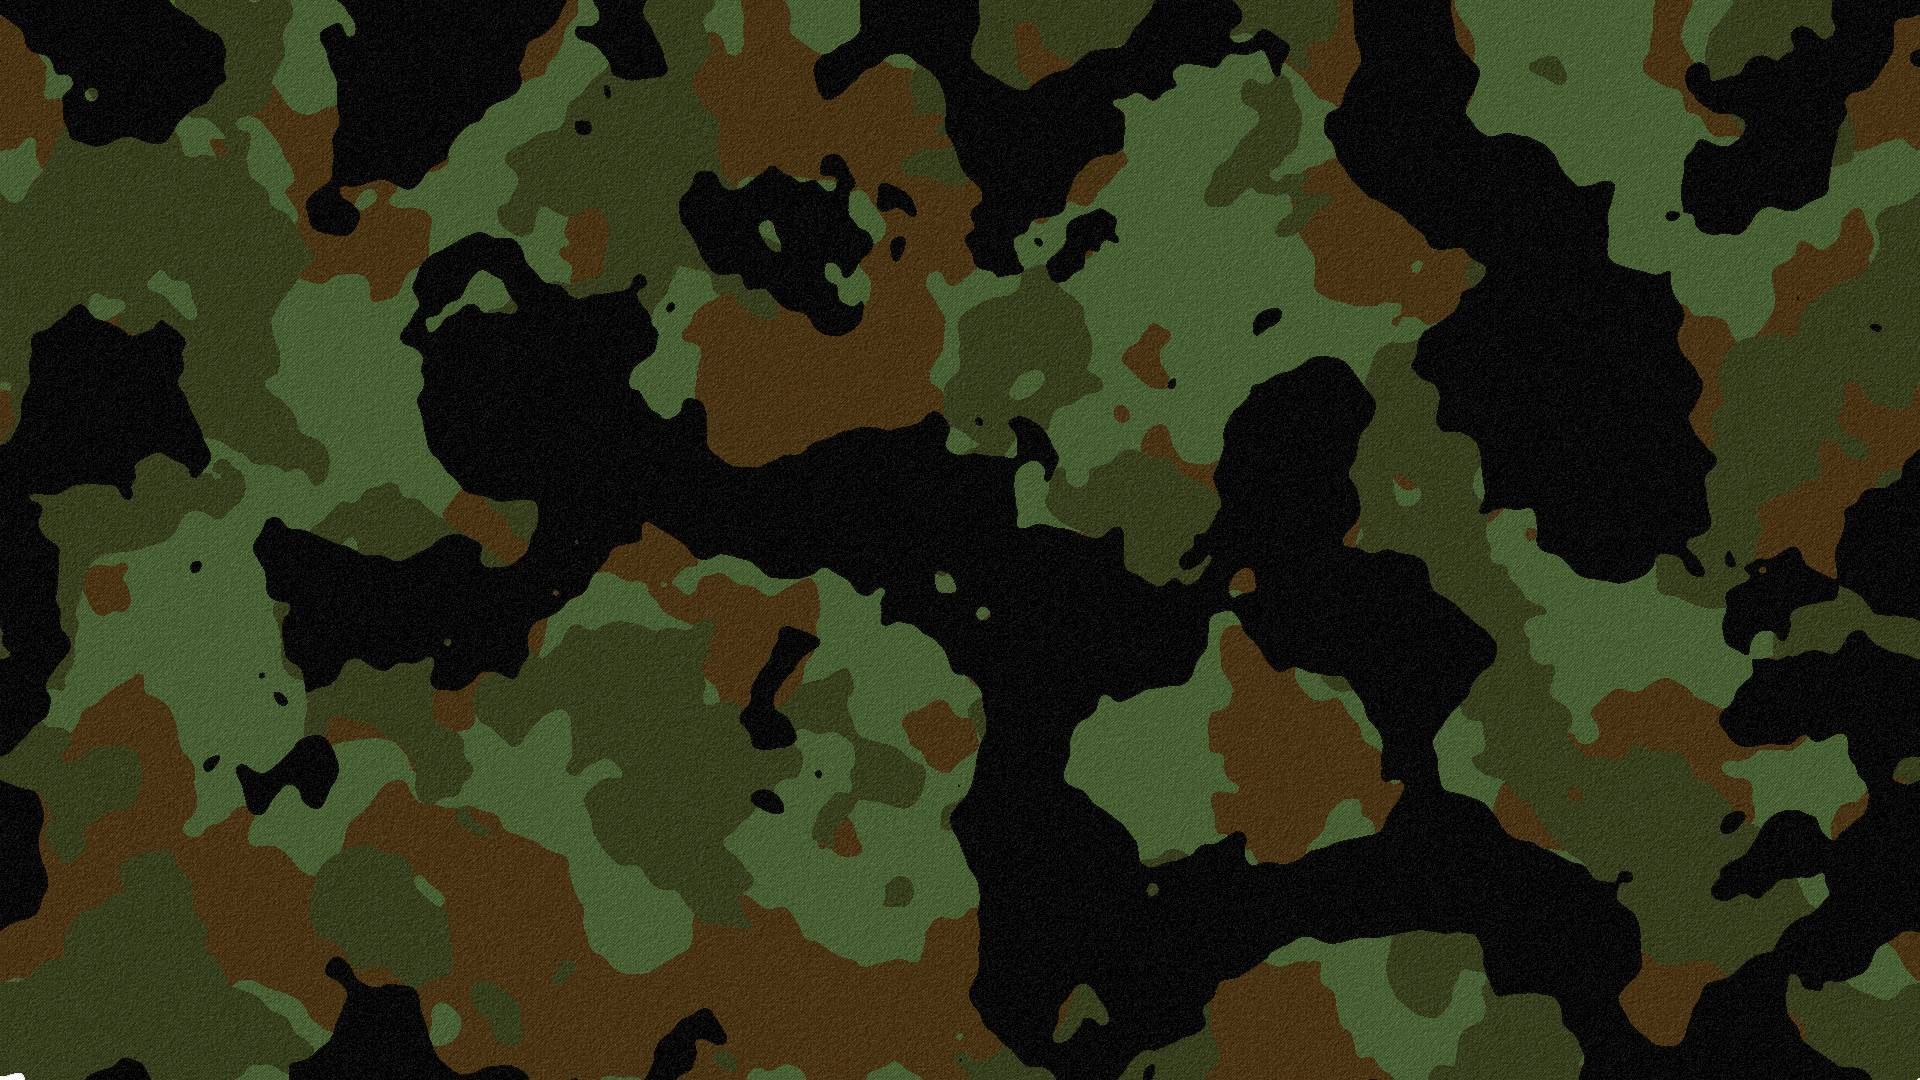 Army background   SF Wallpaper 1920x1080